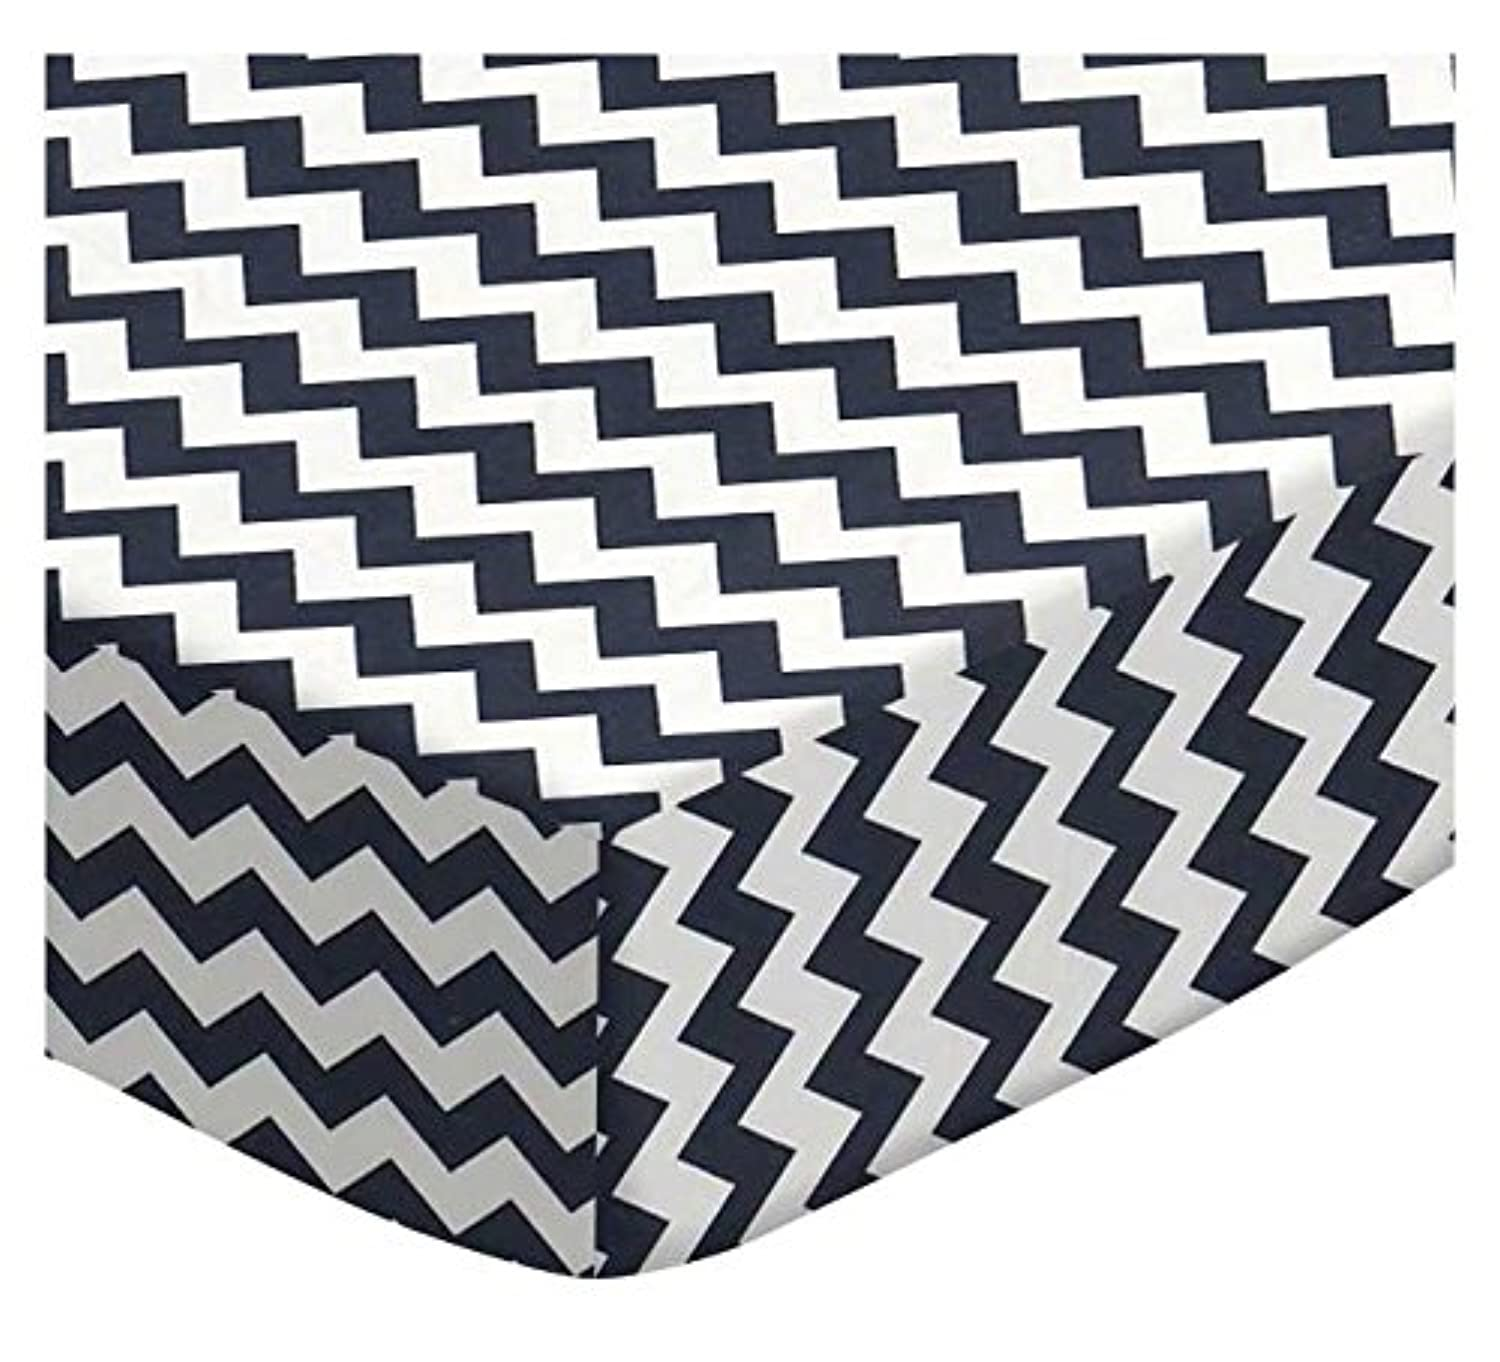 SheetWorld Fitted Square Playard Sheet 37.5 x 37.5 (Fits Joovy) - Navy Chevron Zigzag - Made In USA by sheetworld